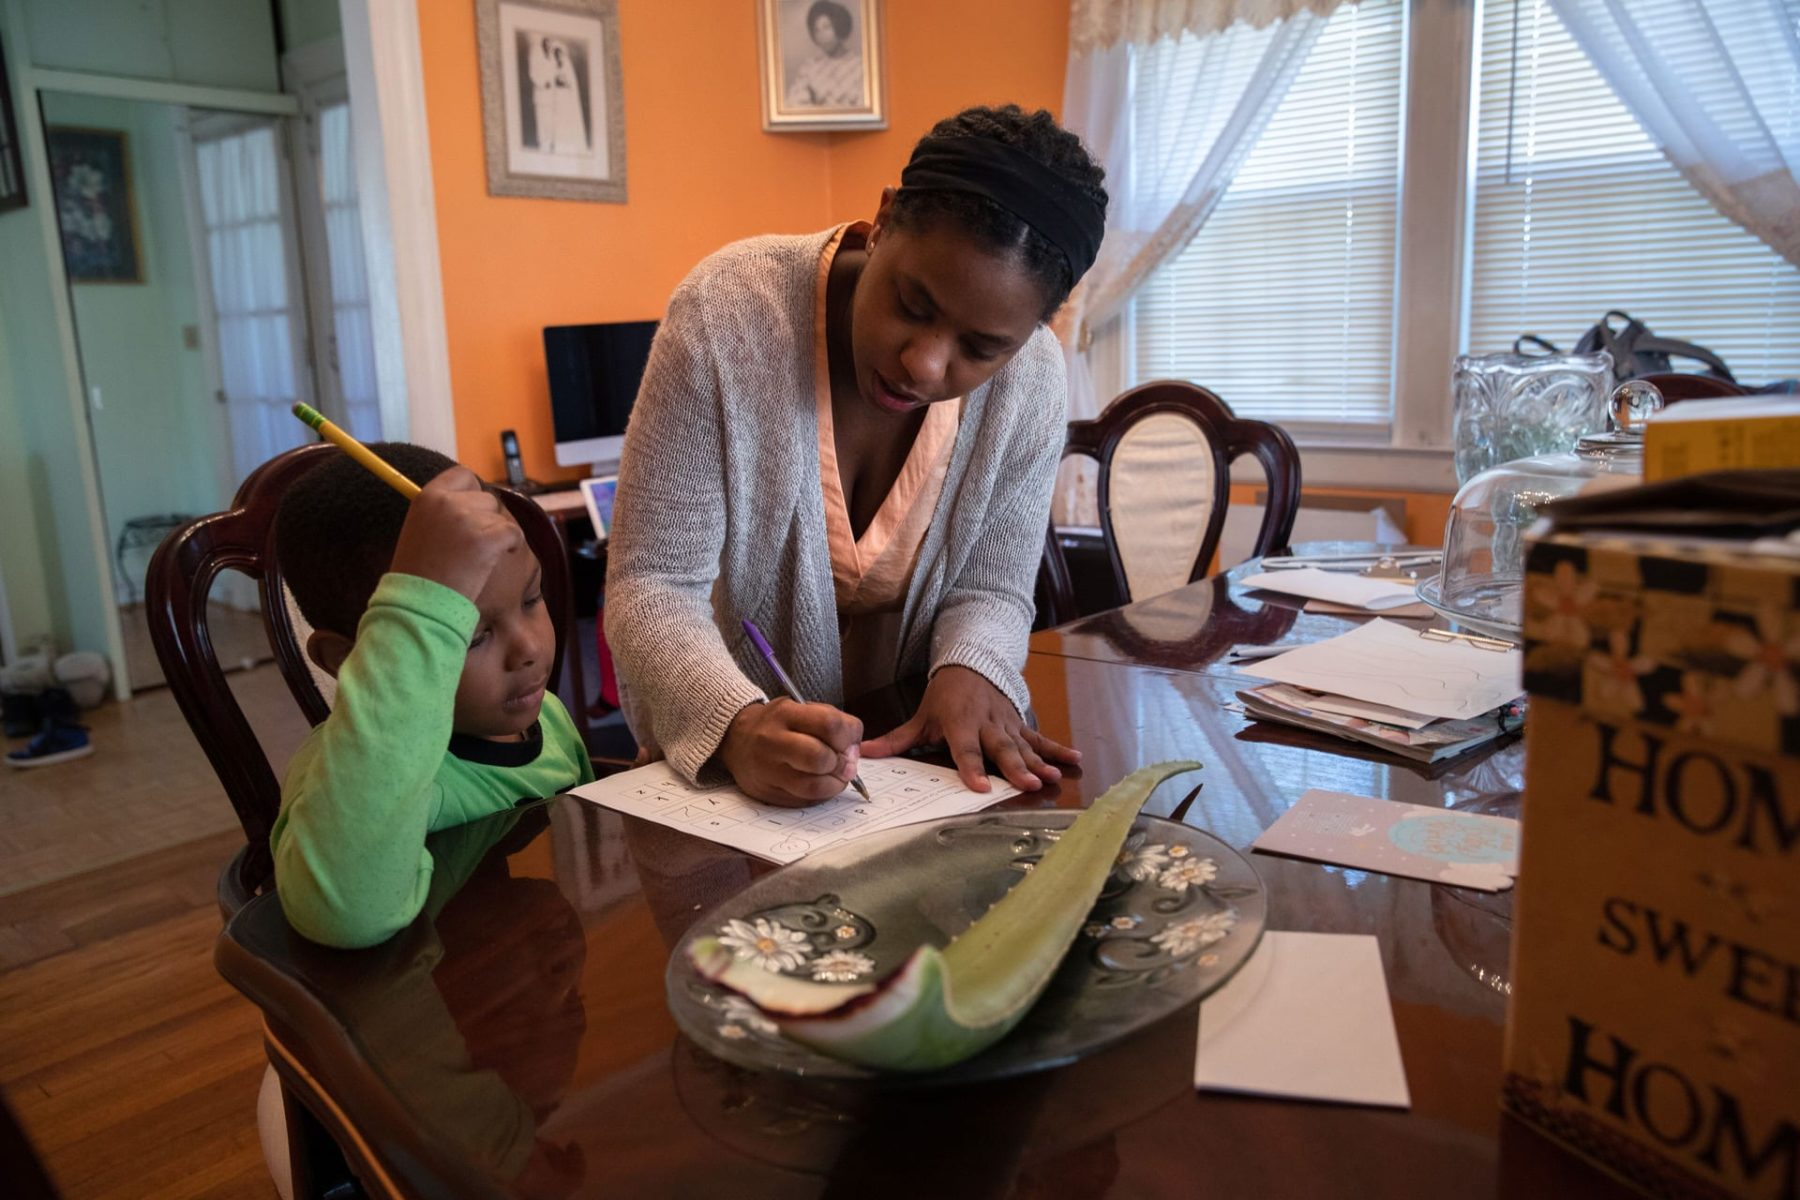 A mother helps her son with his school work at home.